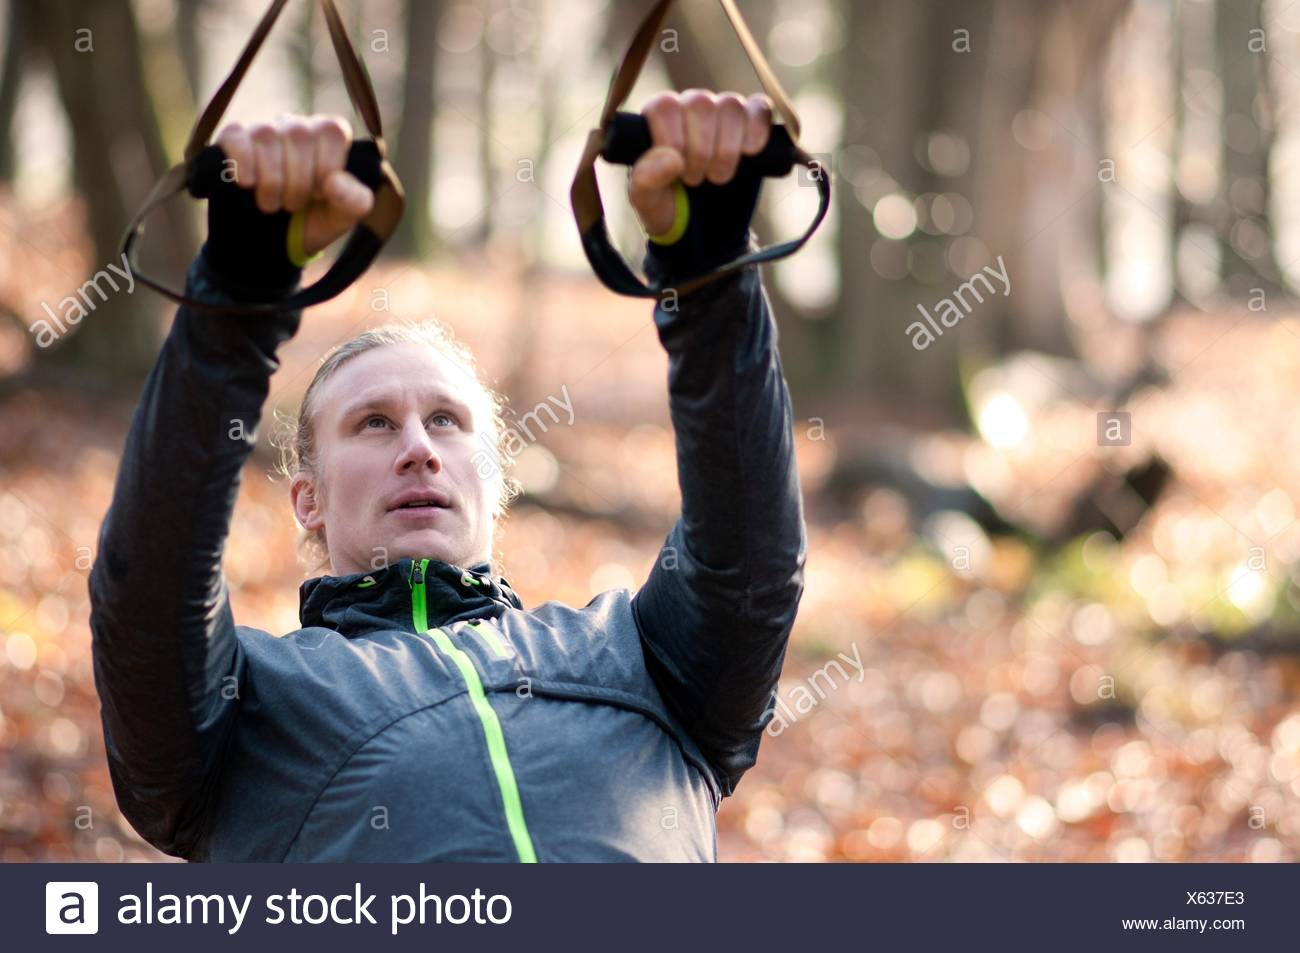 Mid adult man using resistance bands, looking up - Stock Image